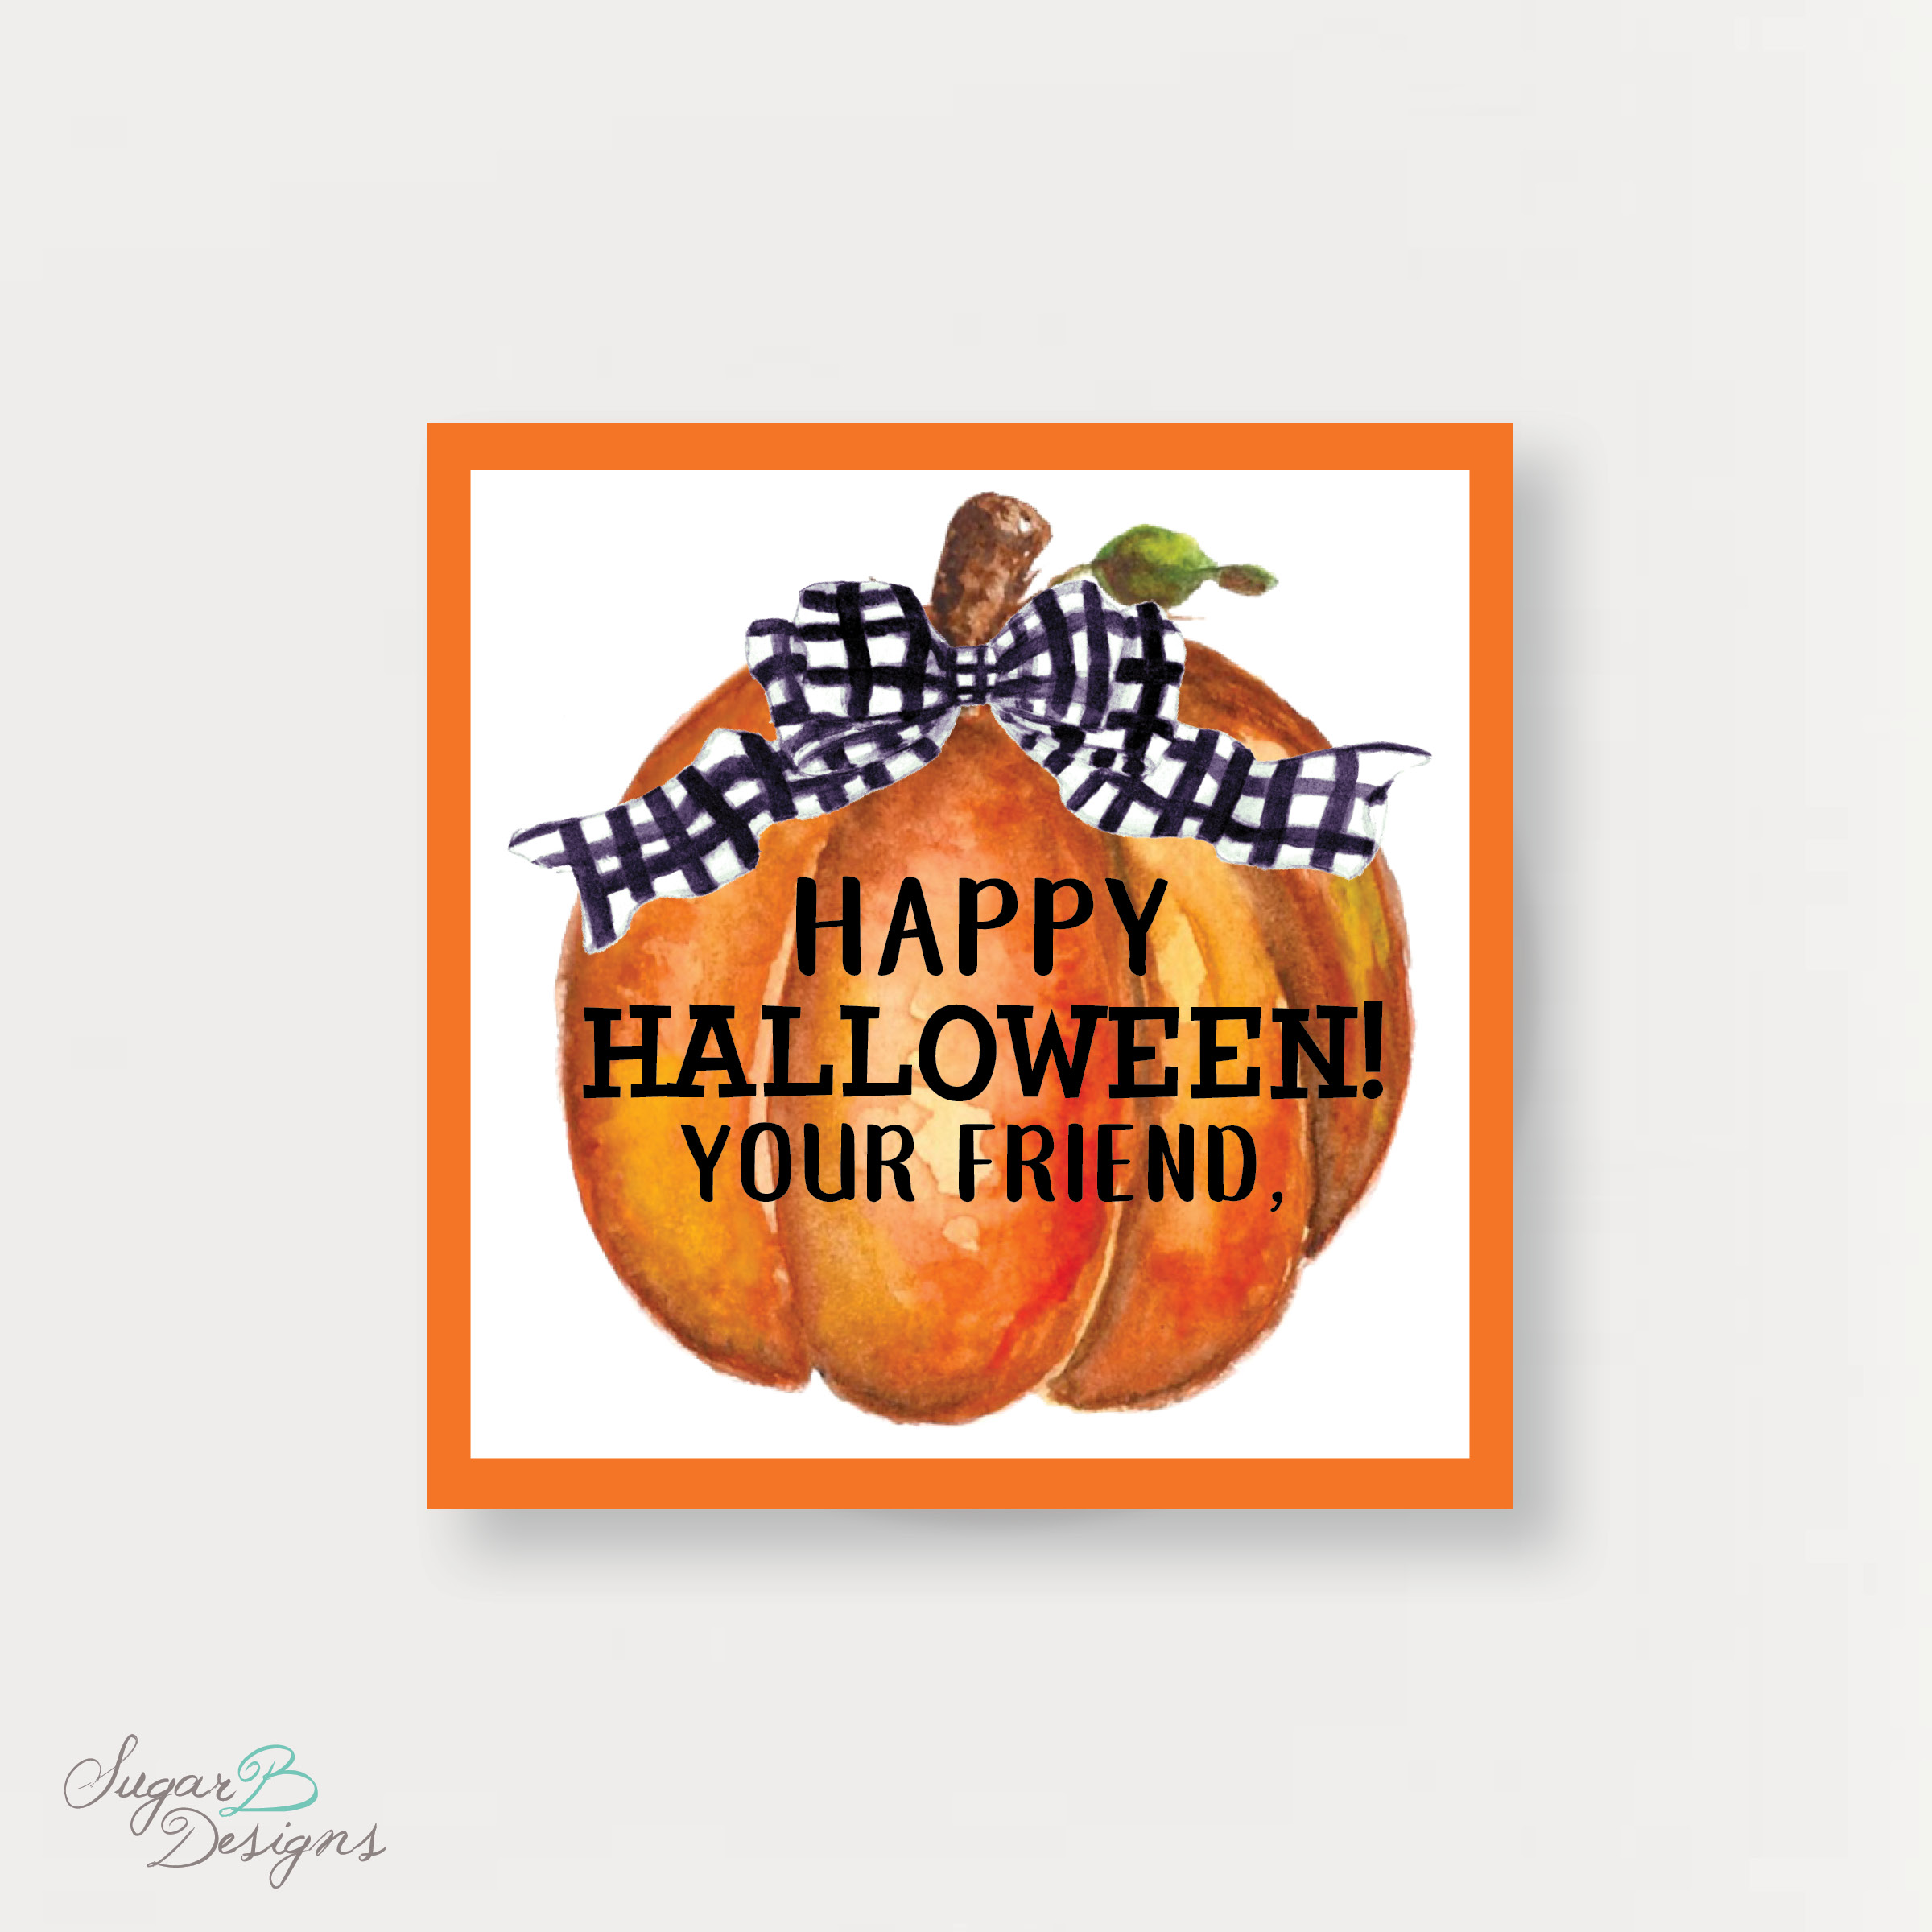 picture regarding Trick or Treat Signs Printable known as Sugar B Programs